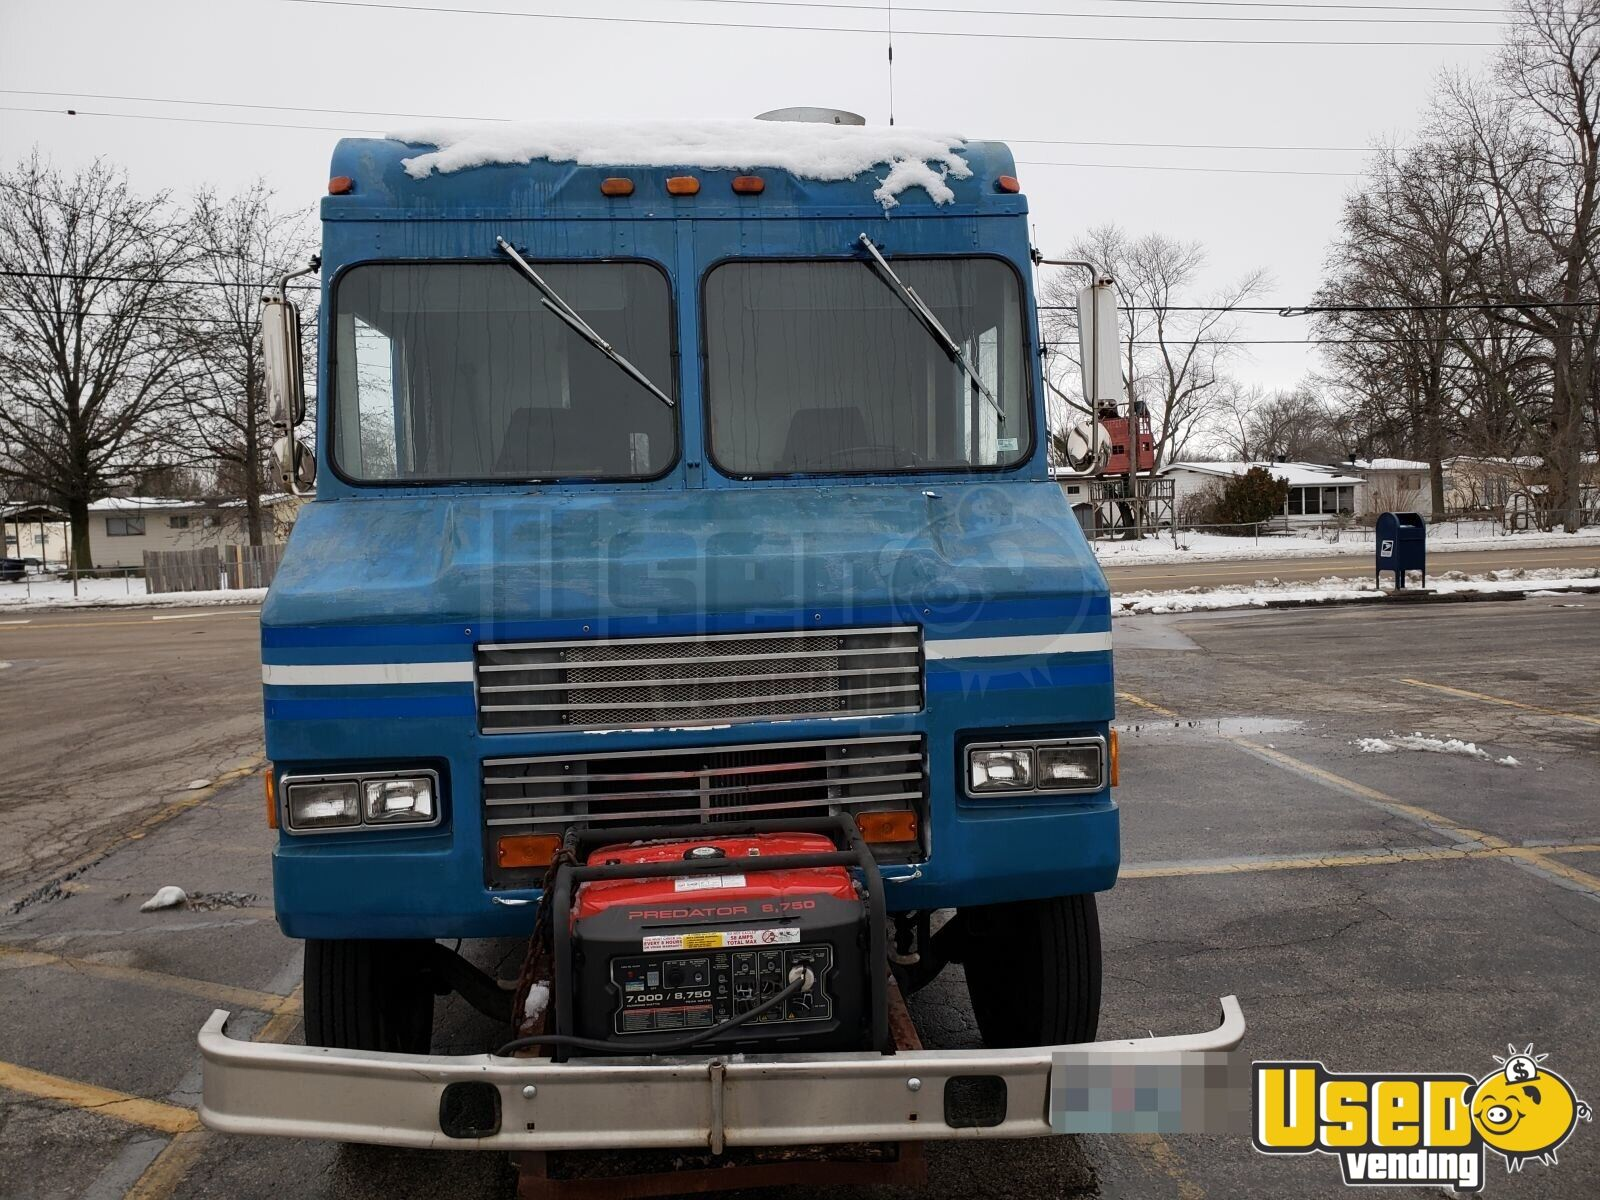 1996 All-purpose Food Truck Awning Missouri Diesel Engine for Sale - 6